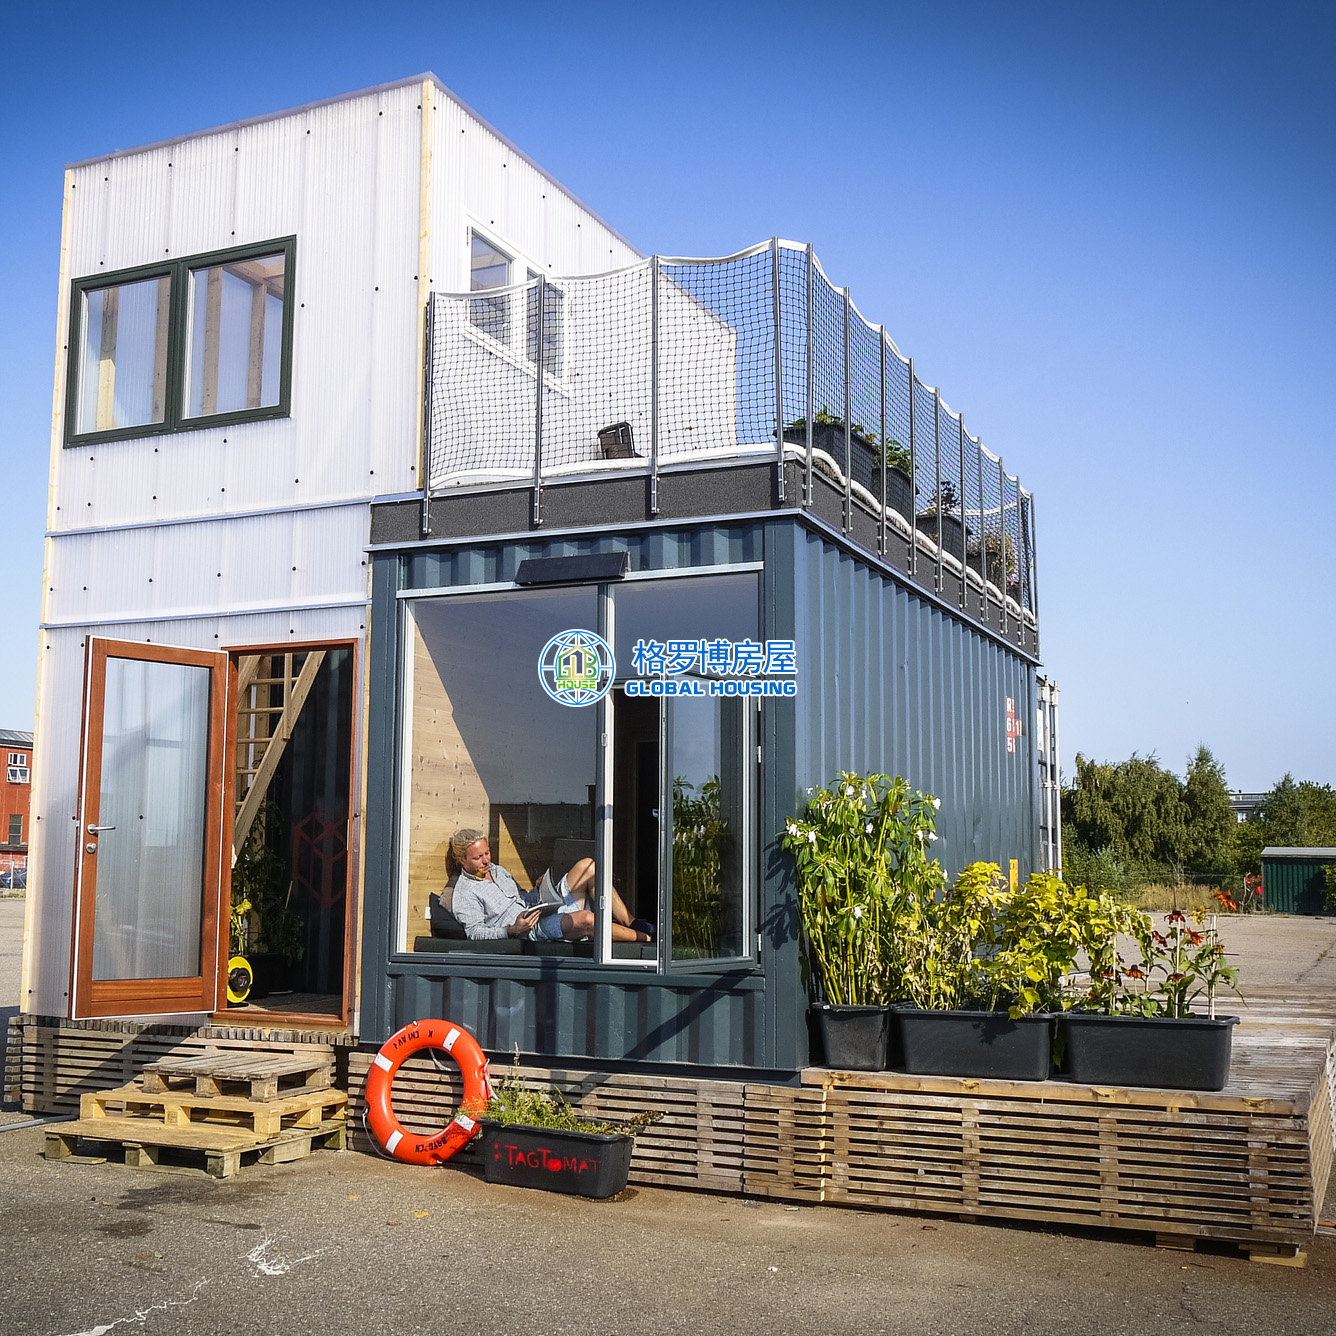 Mobile kitchen container modular prefabricated finished prefab tiny house shipping container houses